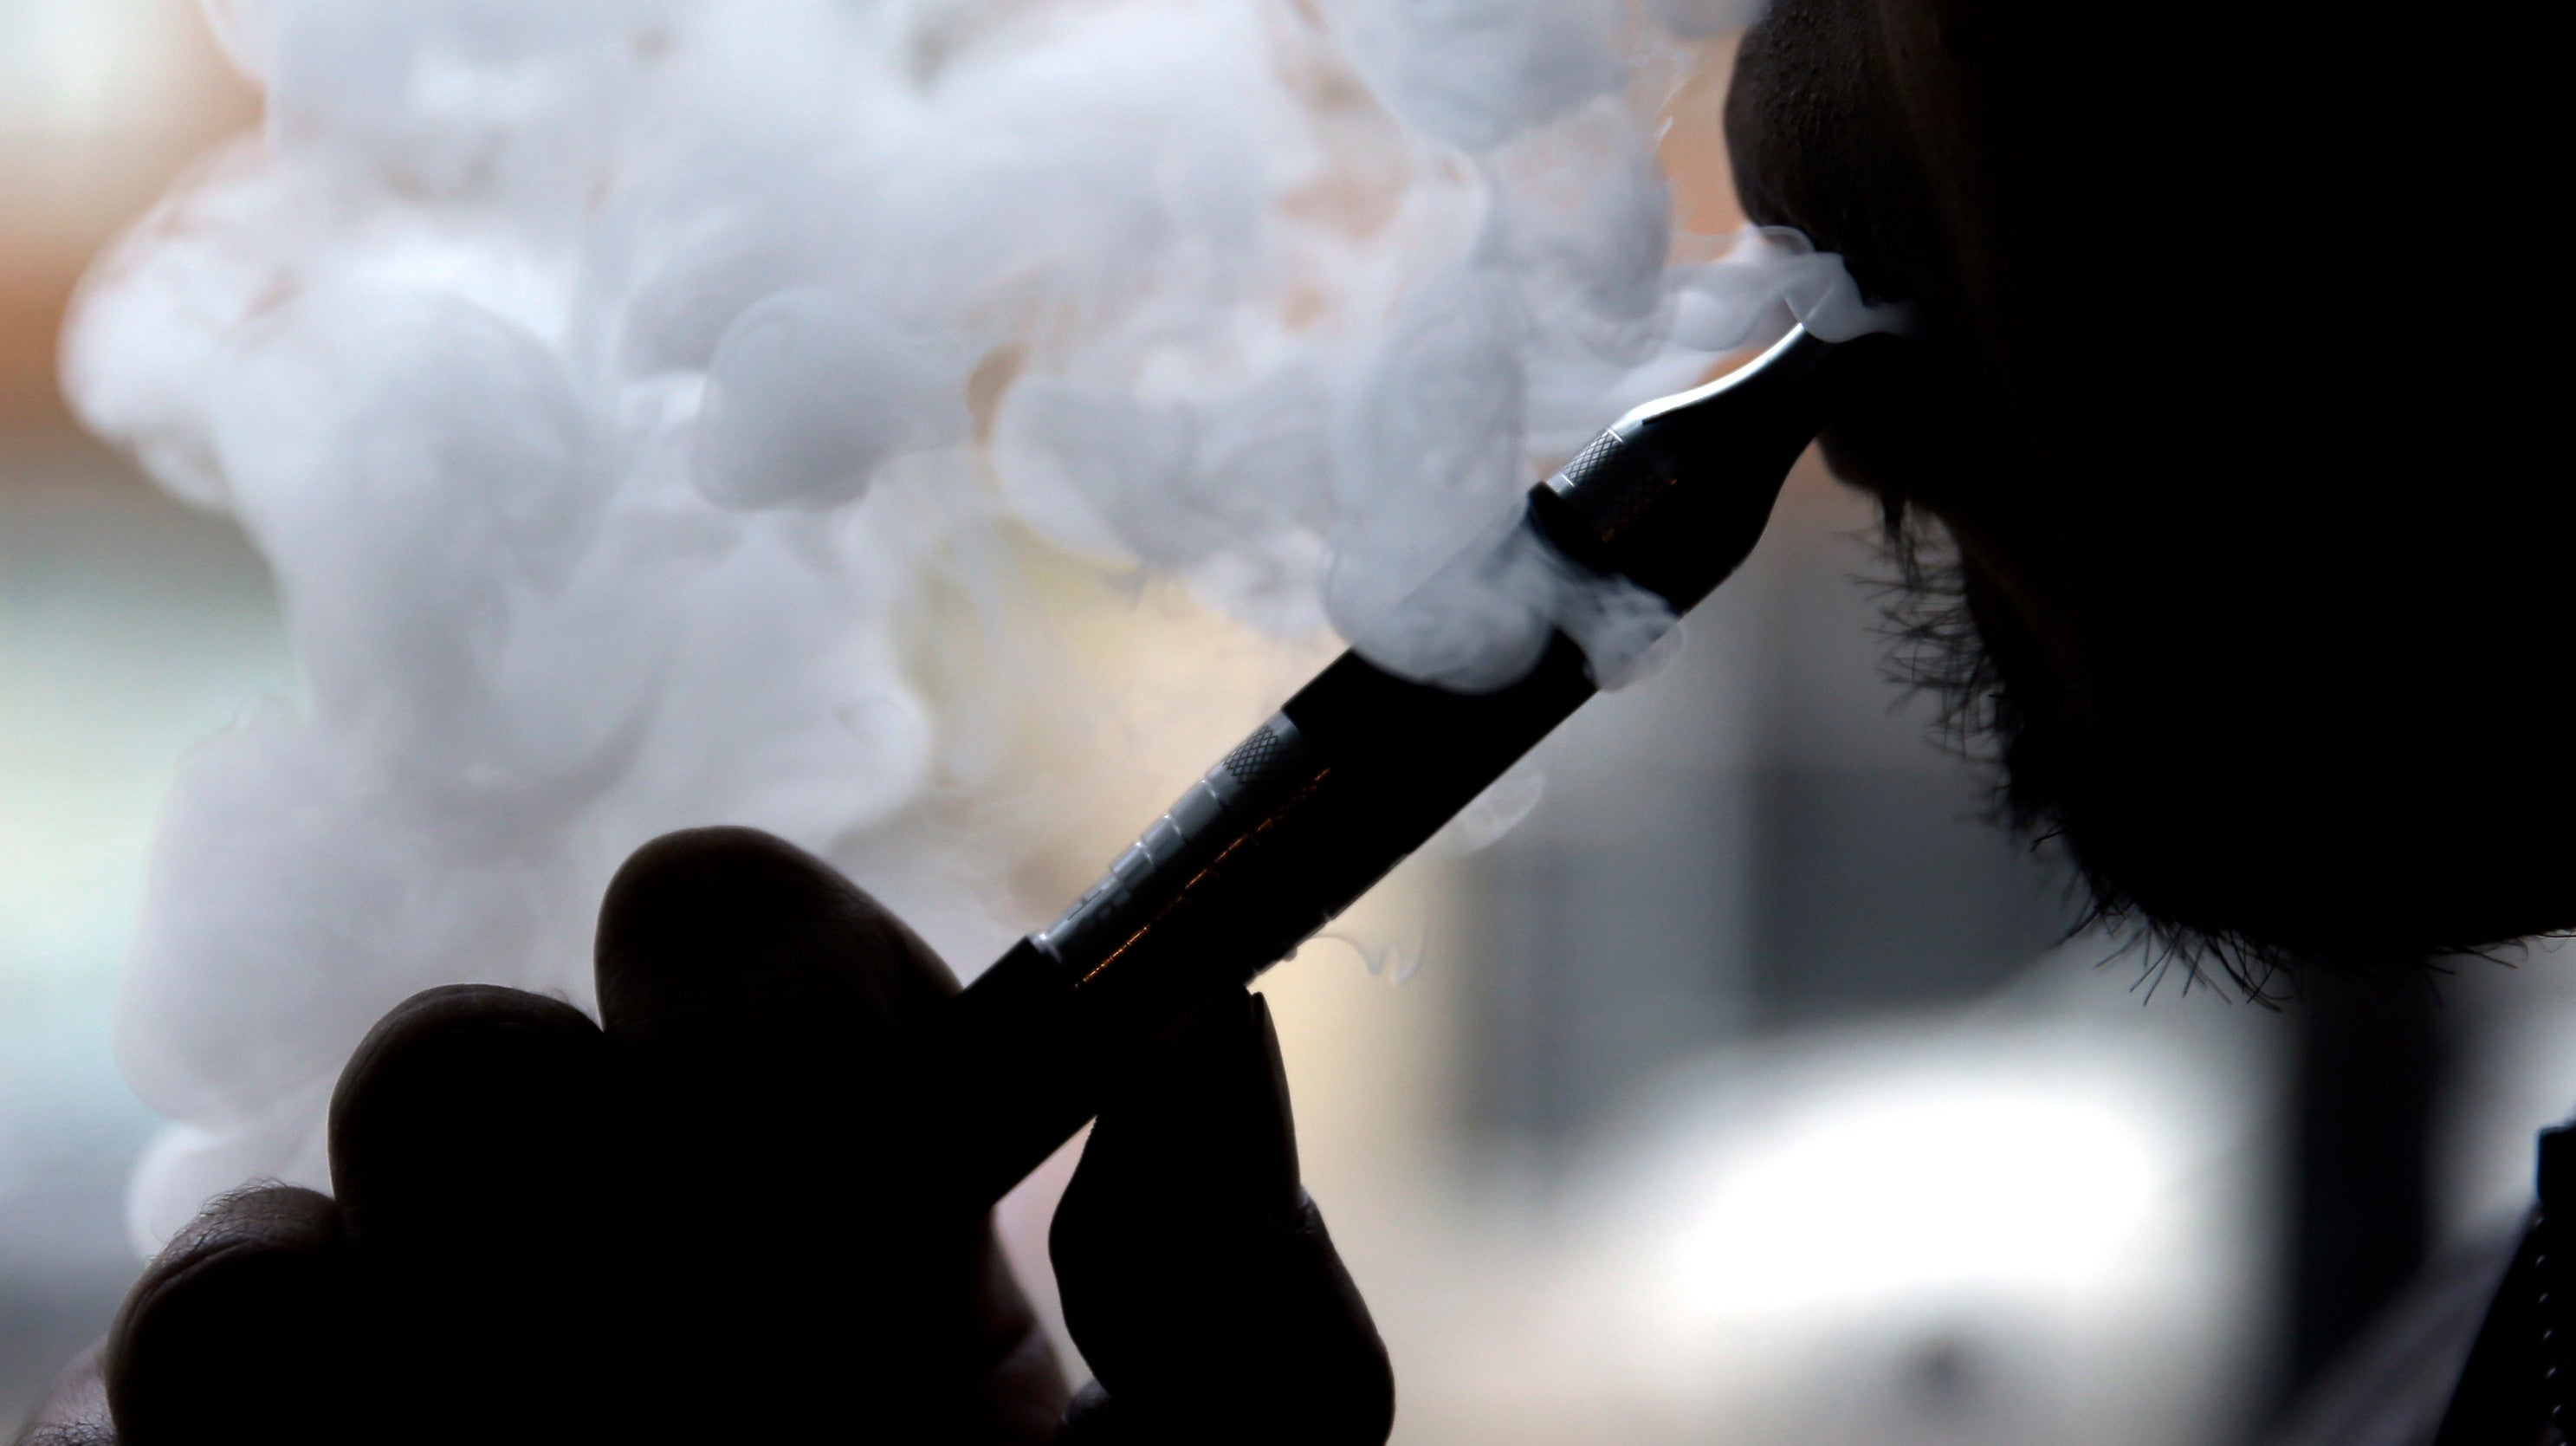 Black Market THC May Be Causing The Alarming Surge In Vape-Related Lung Illnesses